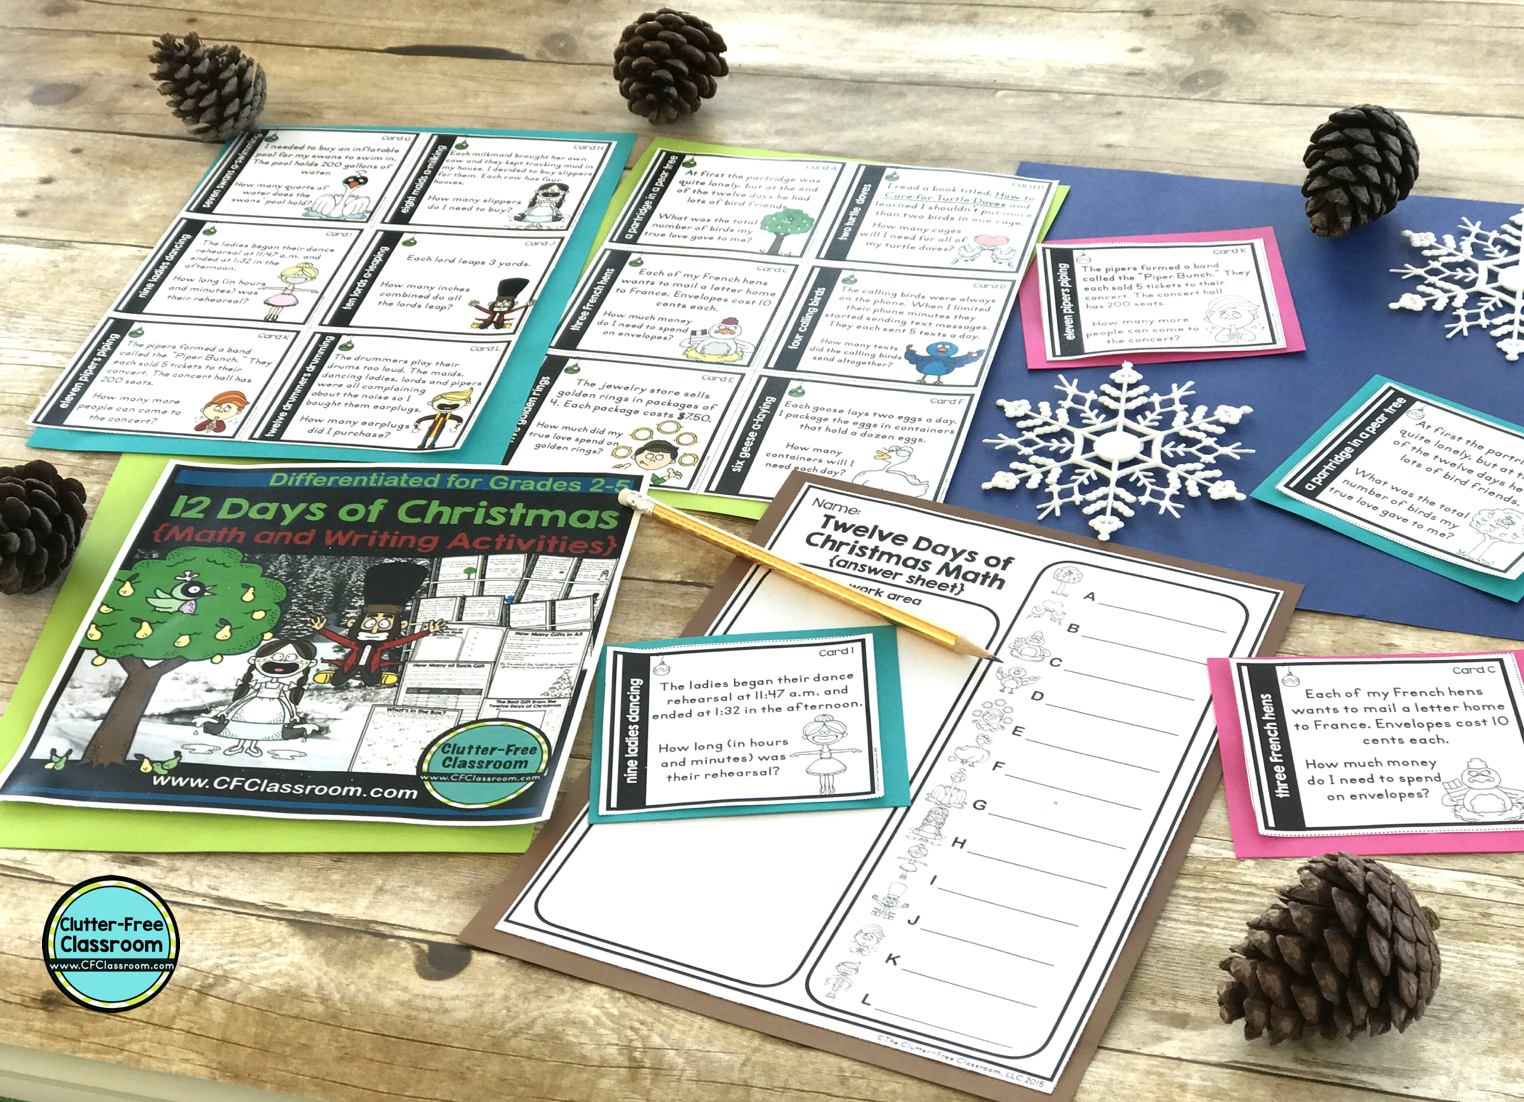 Take a look at these Christmas math and writing activities from the Clutter Free Classroom. These holiday math centers, games, worksheets, task cards, activities and enrichment are so fun! Each is based on the song The Twelve Days of Christmas and offers no prep review and practice of skills around the holidays. #Christmasmathactivities #Christmaswritingactivities #The12daysofChristmas #Decembermathactivites #Decemberwritingactivities #clutterfreeclassroom #cfclassroom